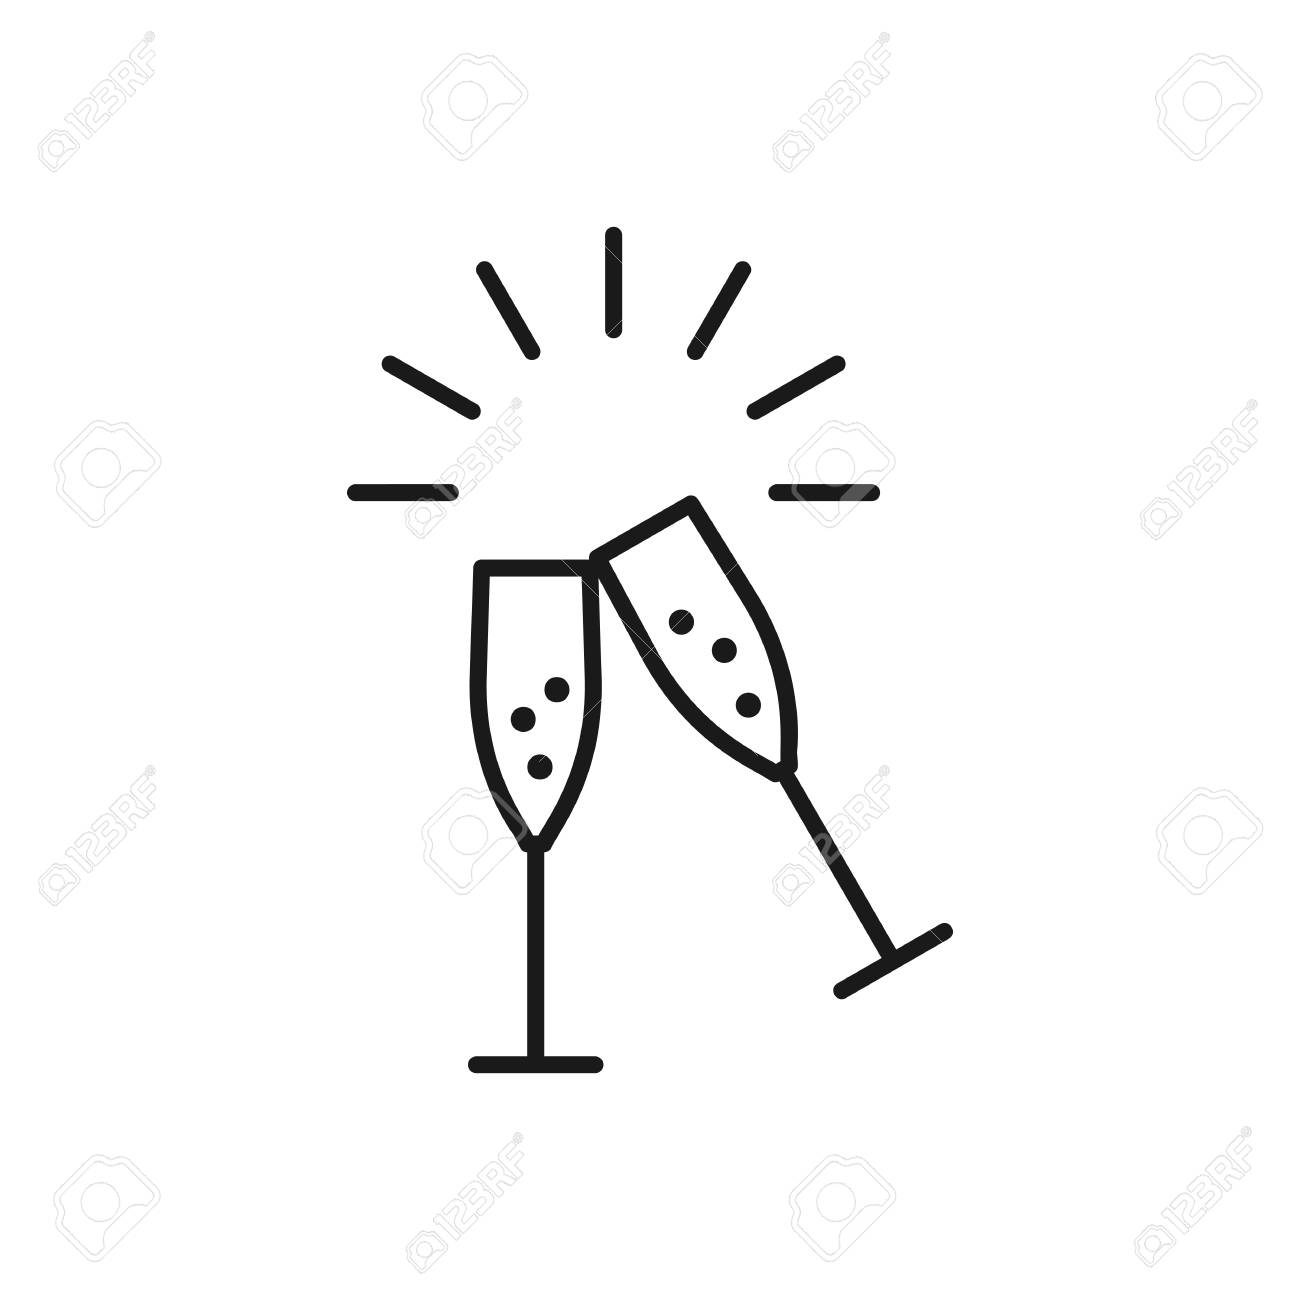 champagne glasses icons wedding toasting wine glasses line rh 123rf com Wedding Clip Art Wedding Bells Clip Art